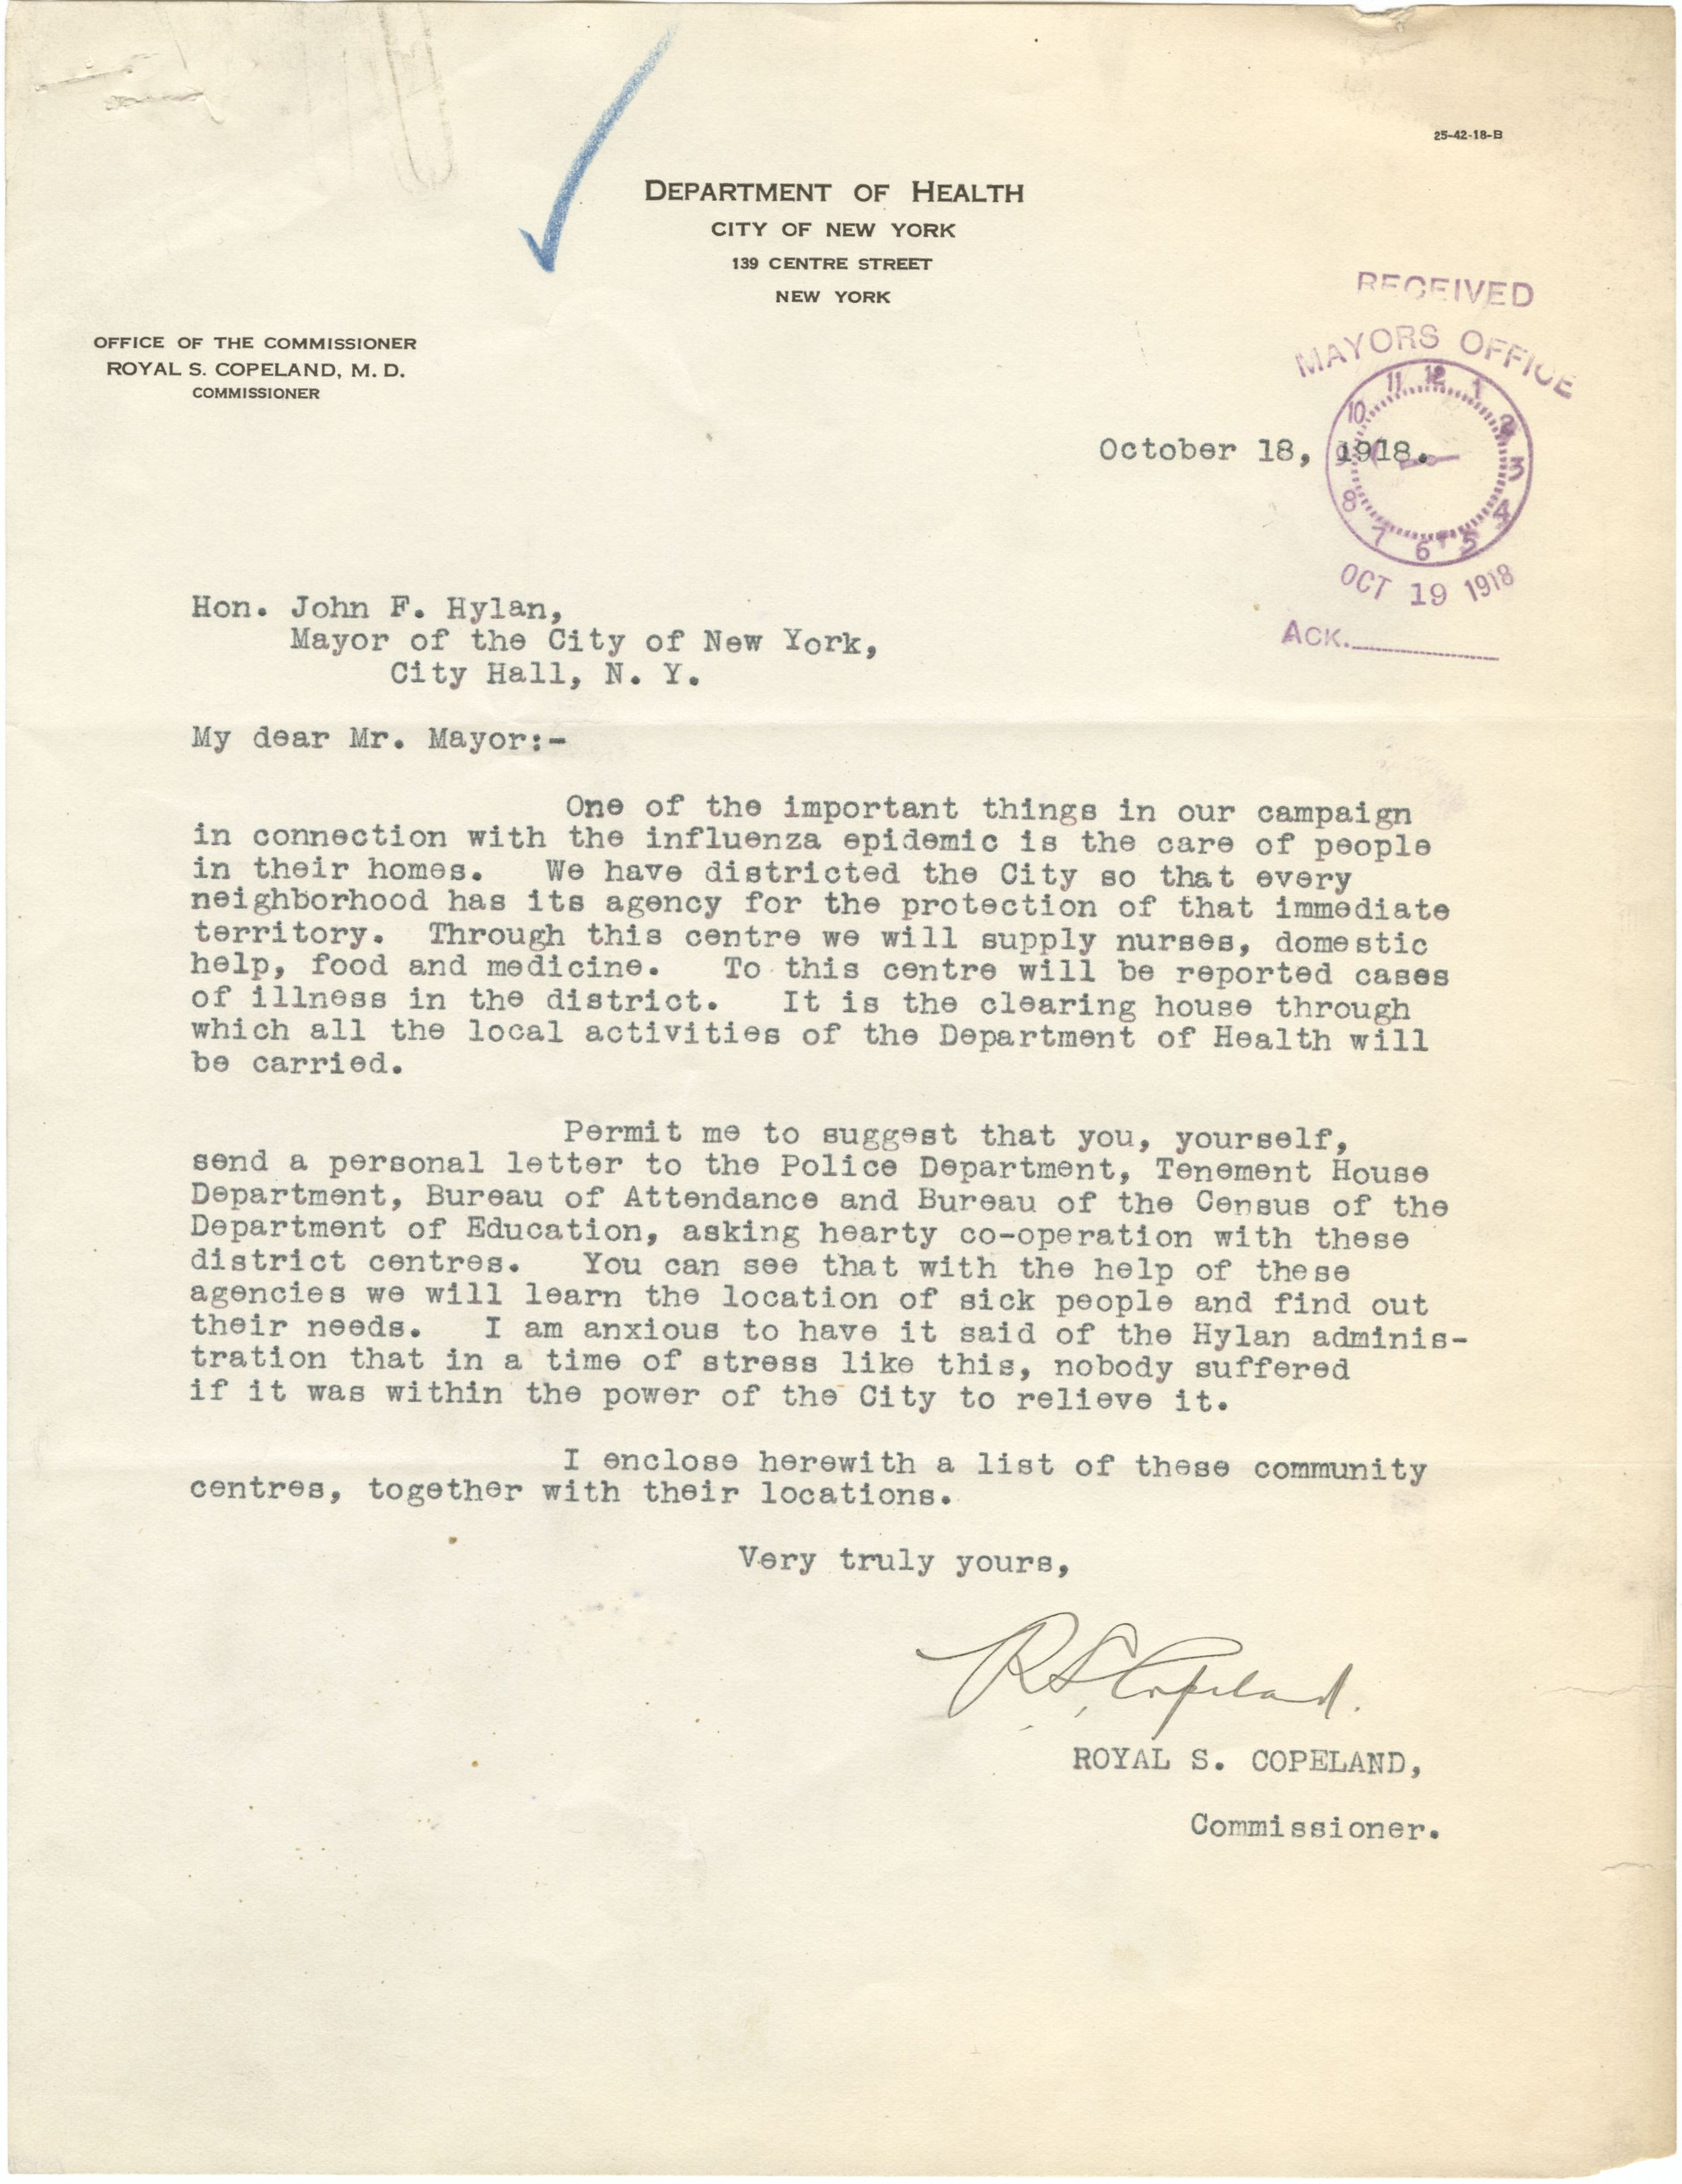 Letter from Dept. of Health Commissioner Copeland to Mayor Hylan, October 18, 1918. Mayor Hylan Papers, NYC Municipal Archives.